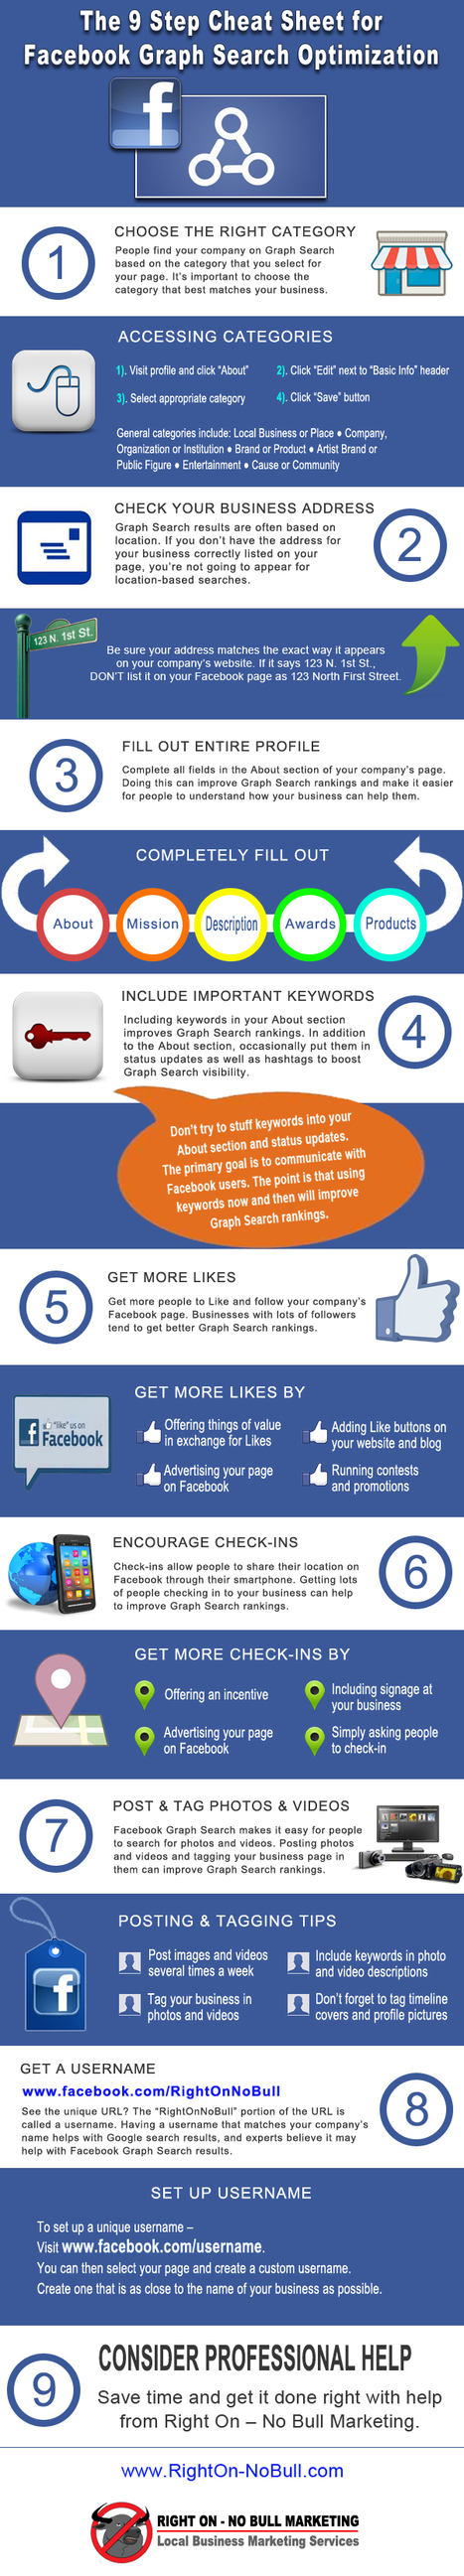 9 Steps for Facebook Graph Search Optimization [INFOGRAPHIC] | JOIN SCOOP.IT AND FOLLOW ME ON SCOOP.IT | Scoop.it